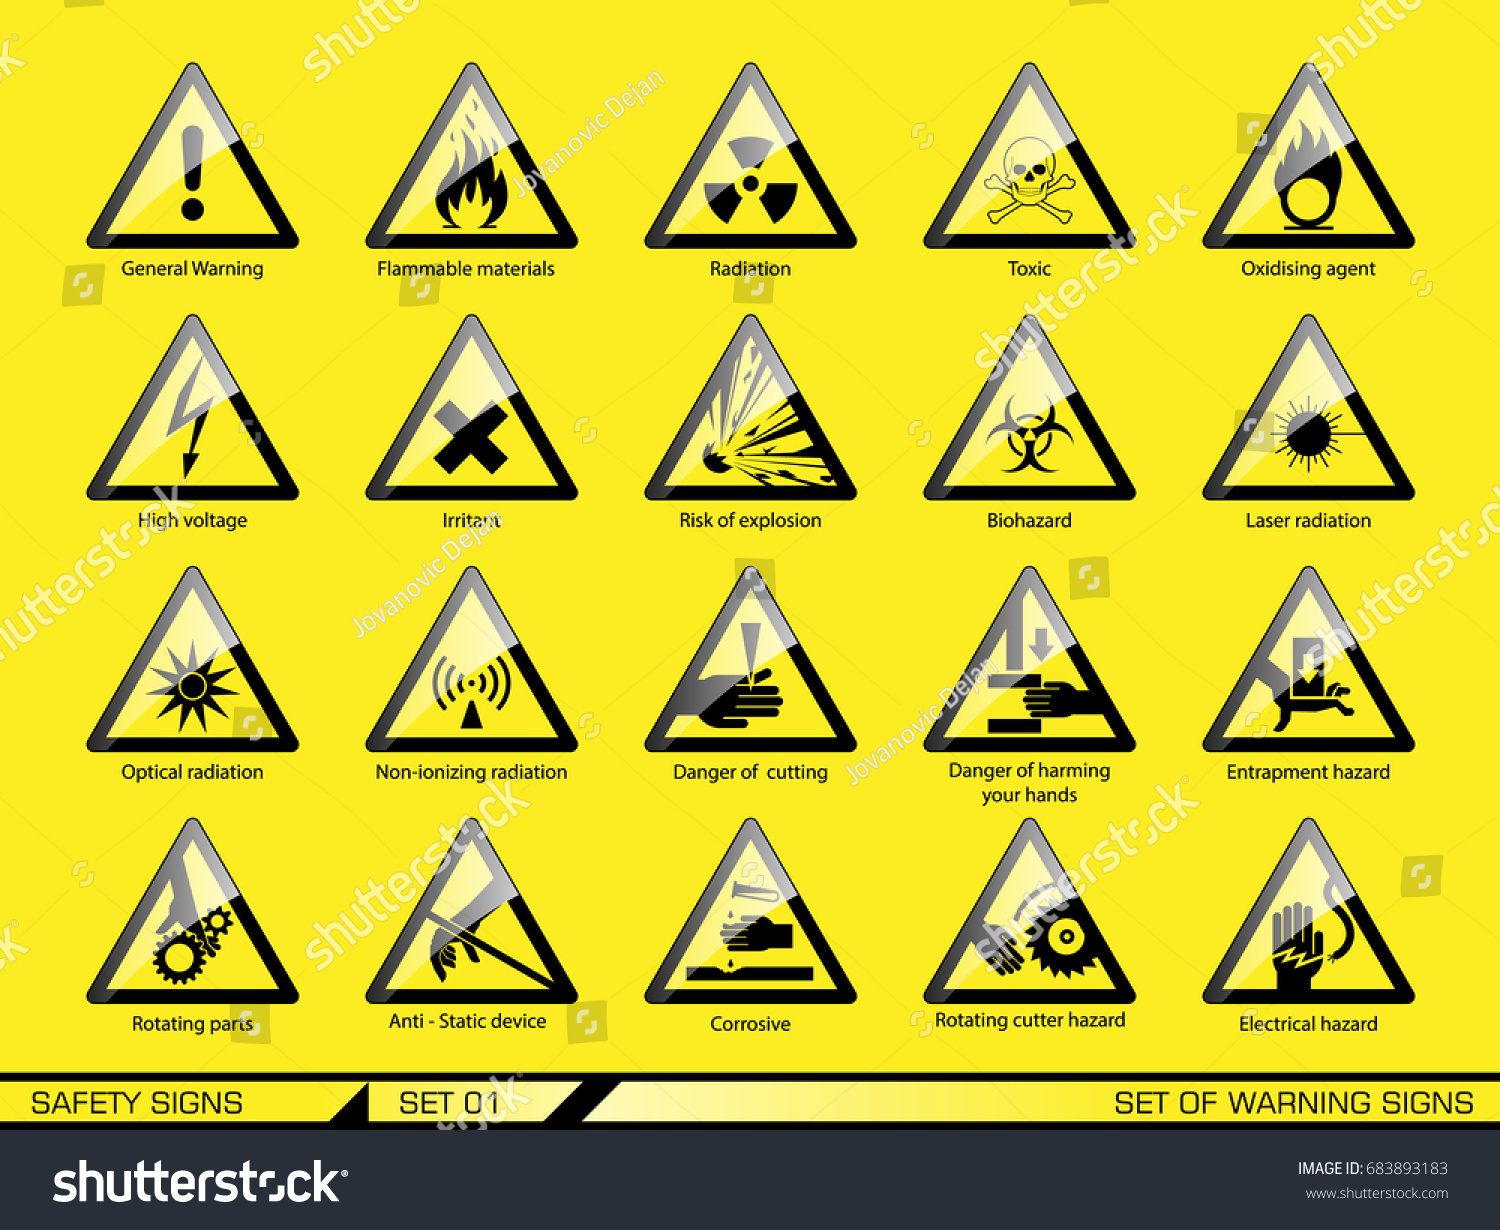 Set Safety Warning Signs Signs Danger Stock Vector 683893183